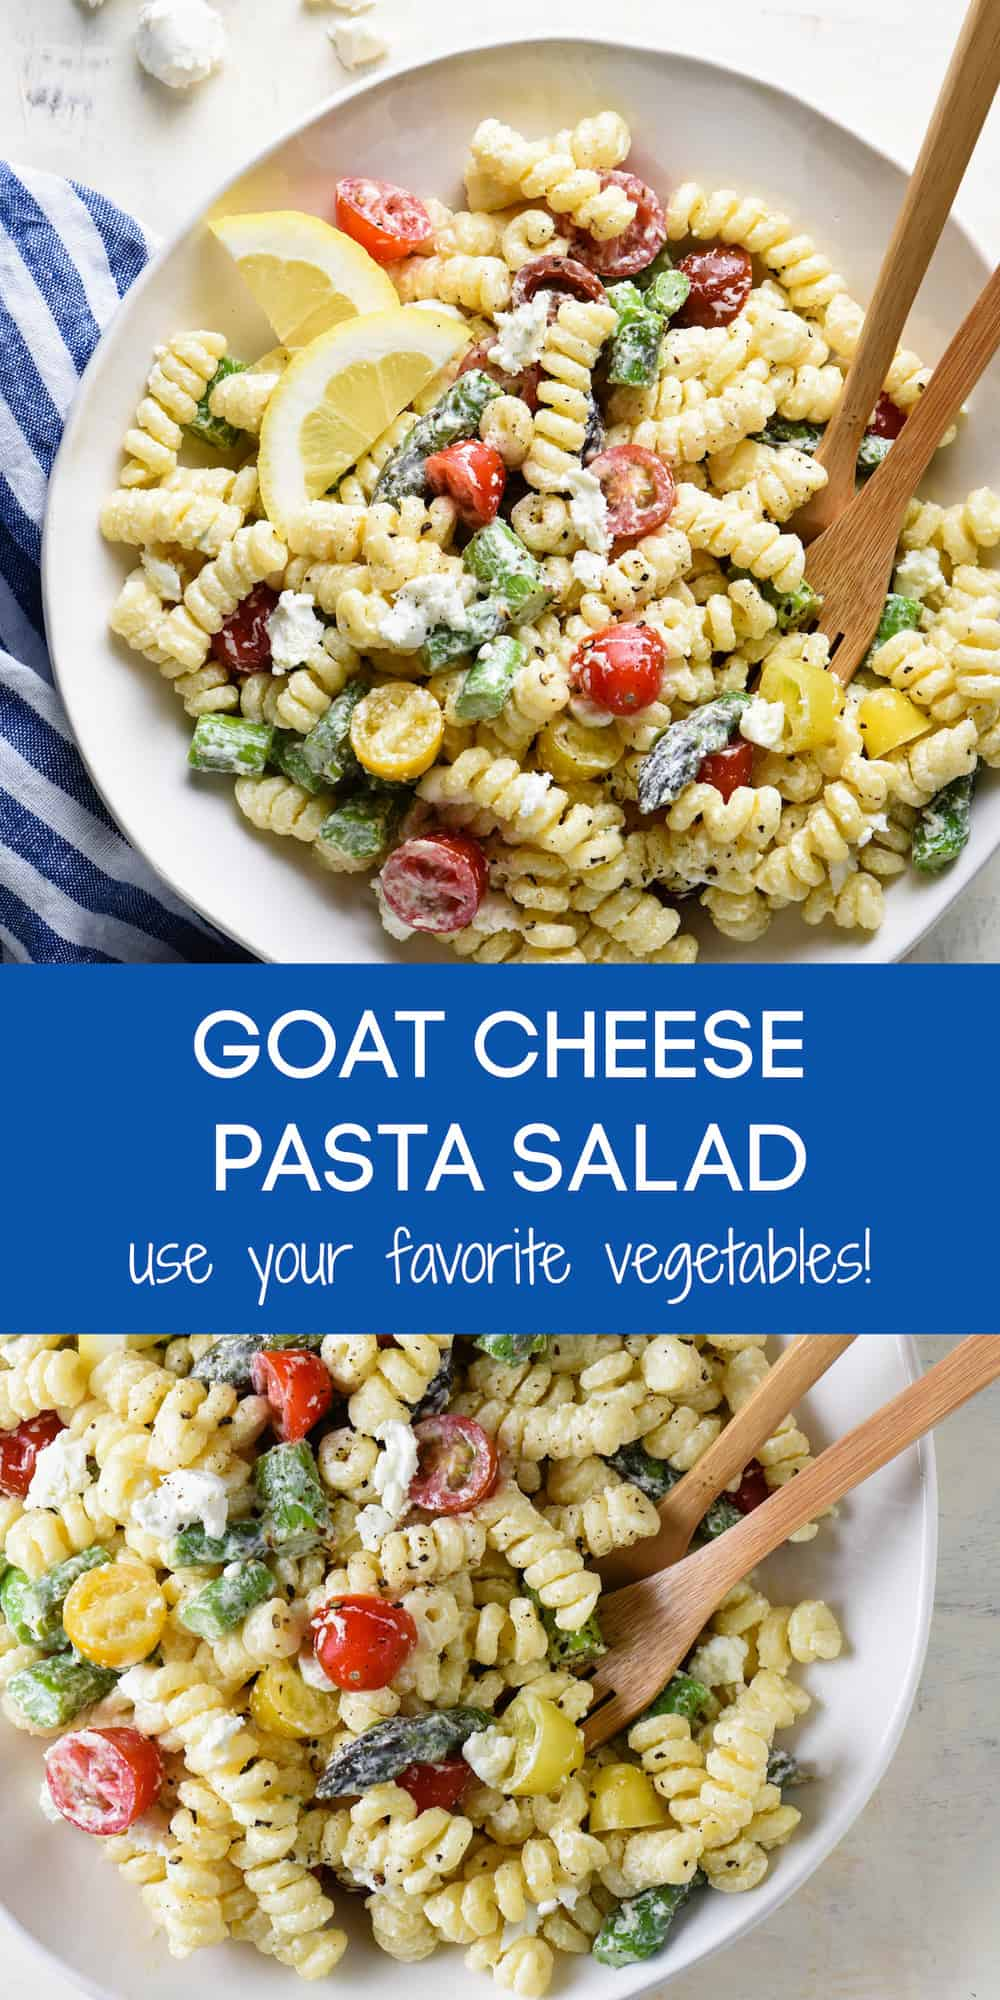 This creamy goat cheese pasta salad is simple to put together and will become a family favorite! Customize with any vegetables you like. | foxeslovelemons.com